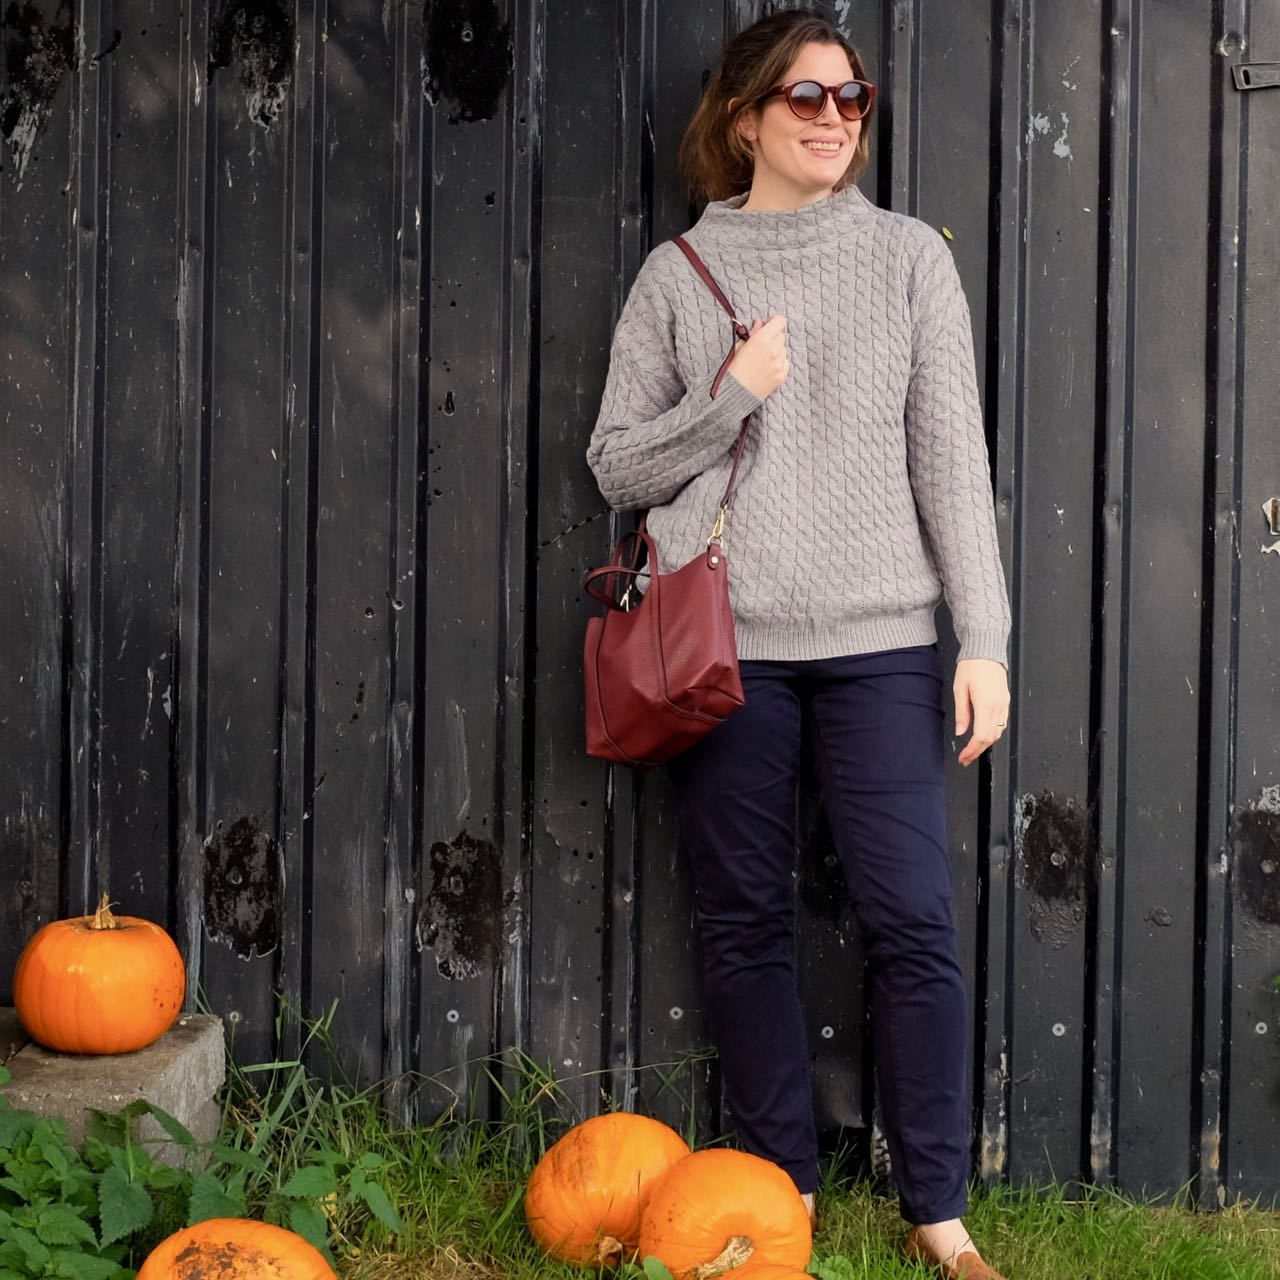 Mango autumn jumper and bag